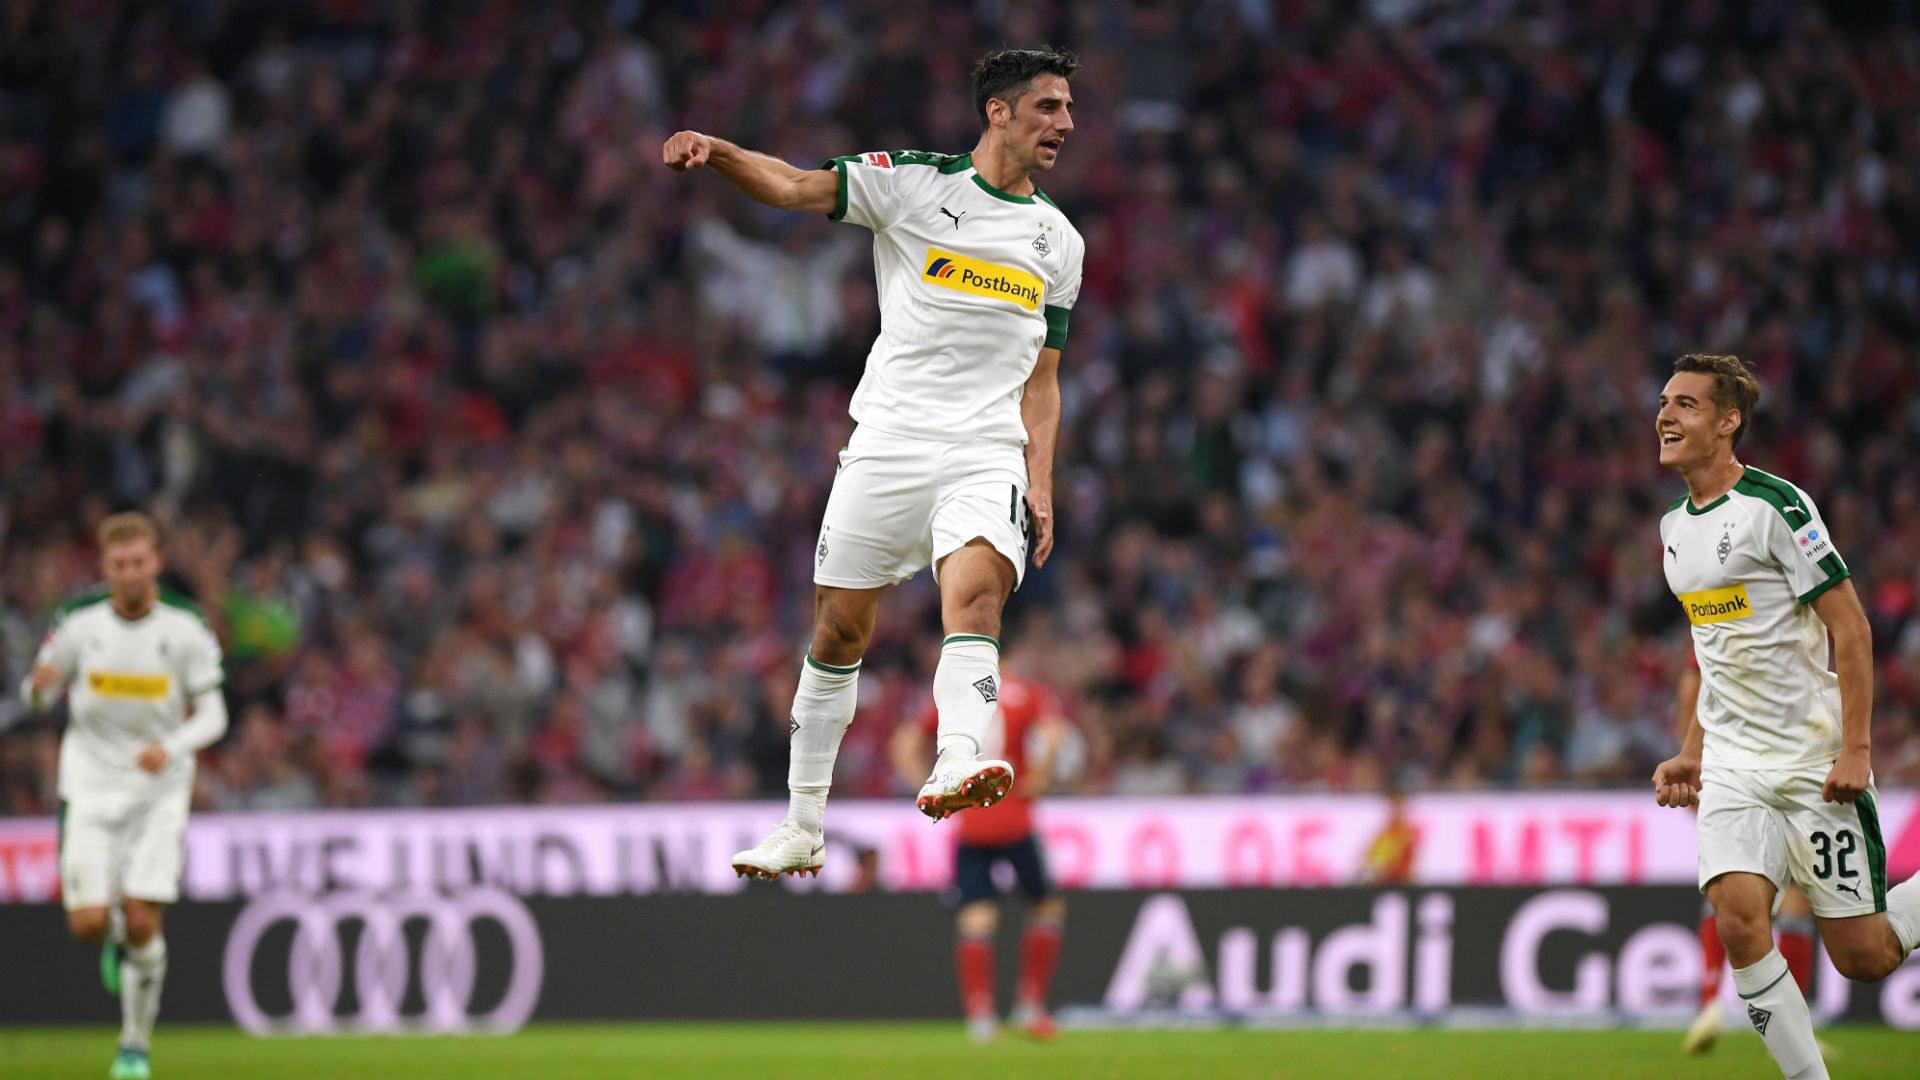 Bundesliga round-up: Bayern Munich suffer shock defeat as Borussia Dortmund stretch lead